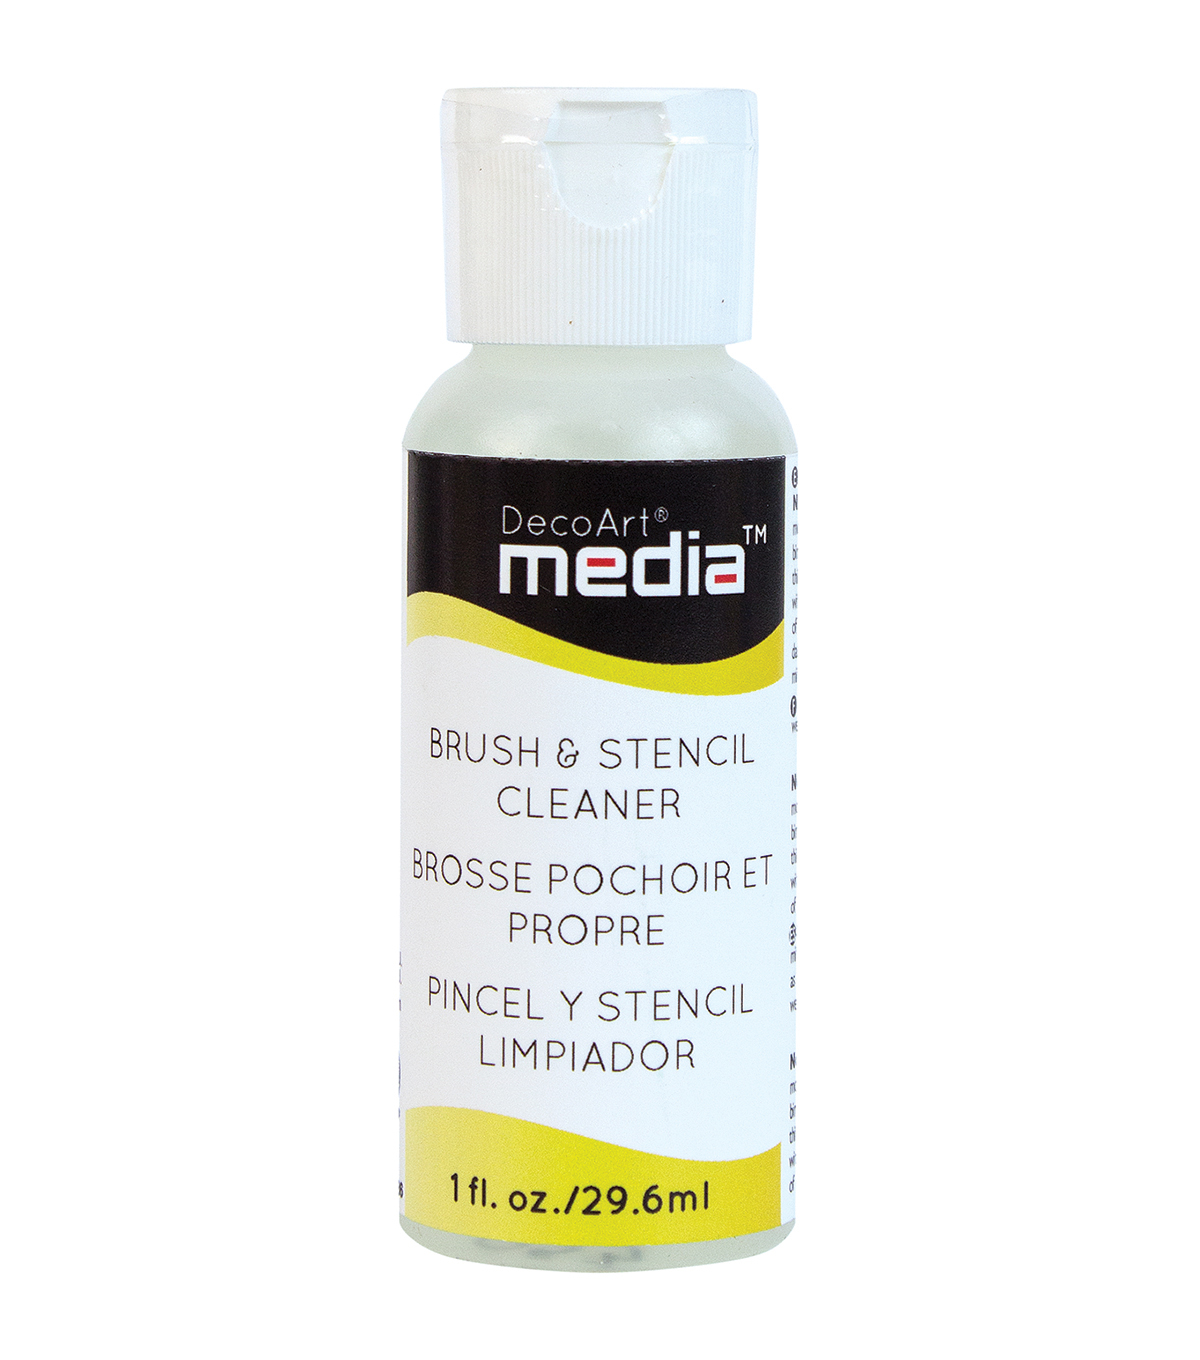 DecoArt Brush & Stencil Cleaner 2oz